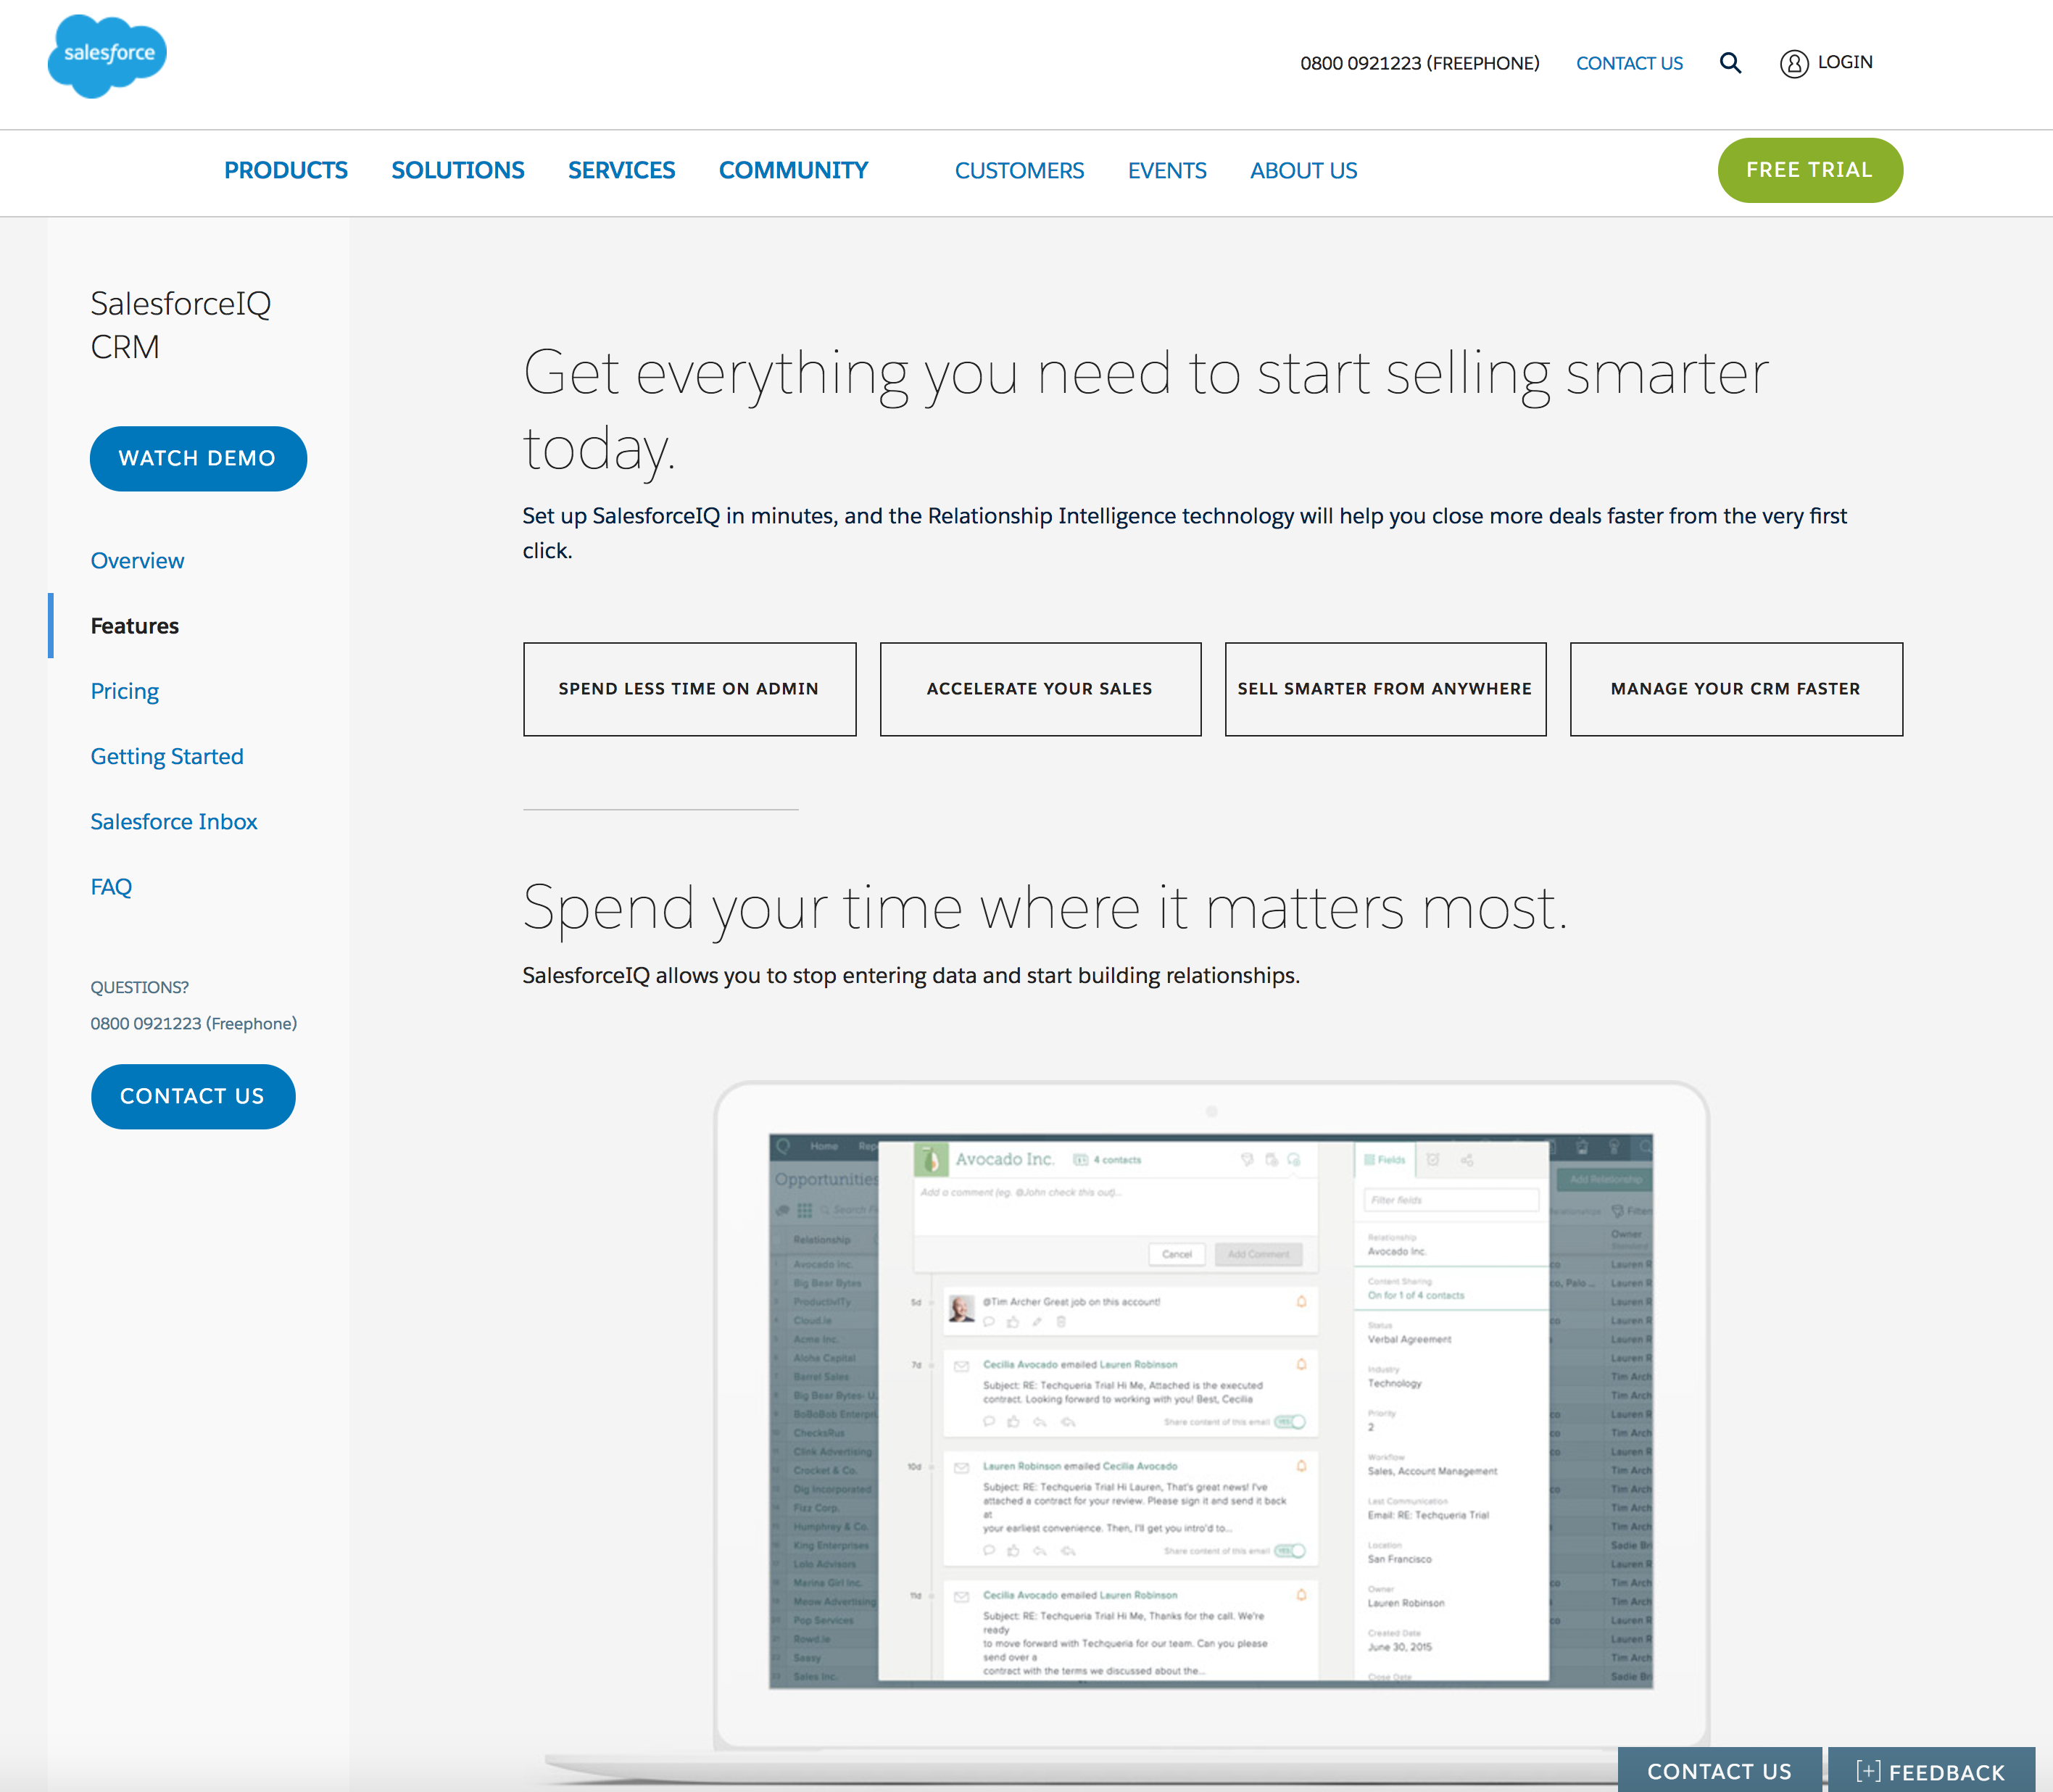 Salesforce website